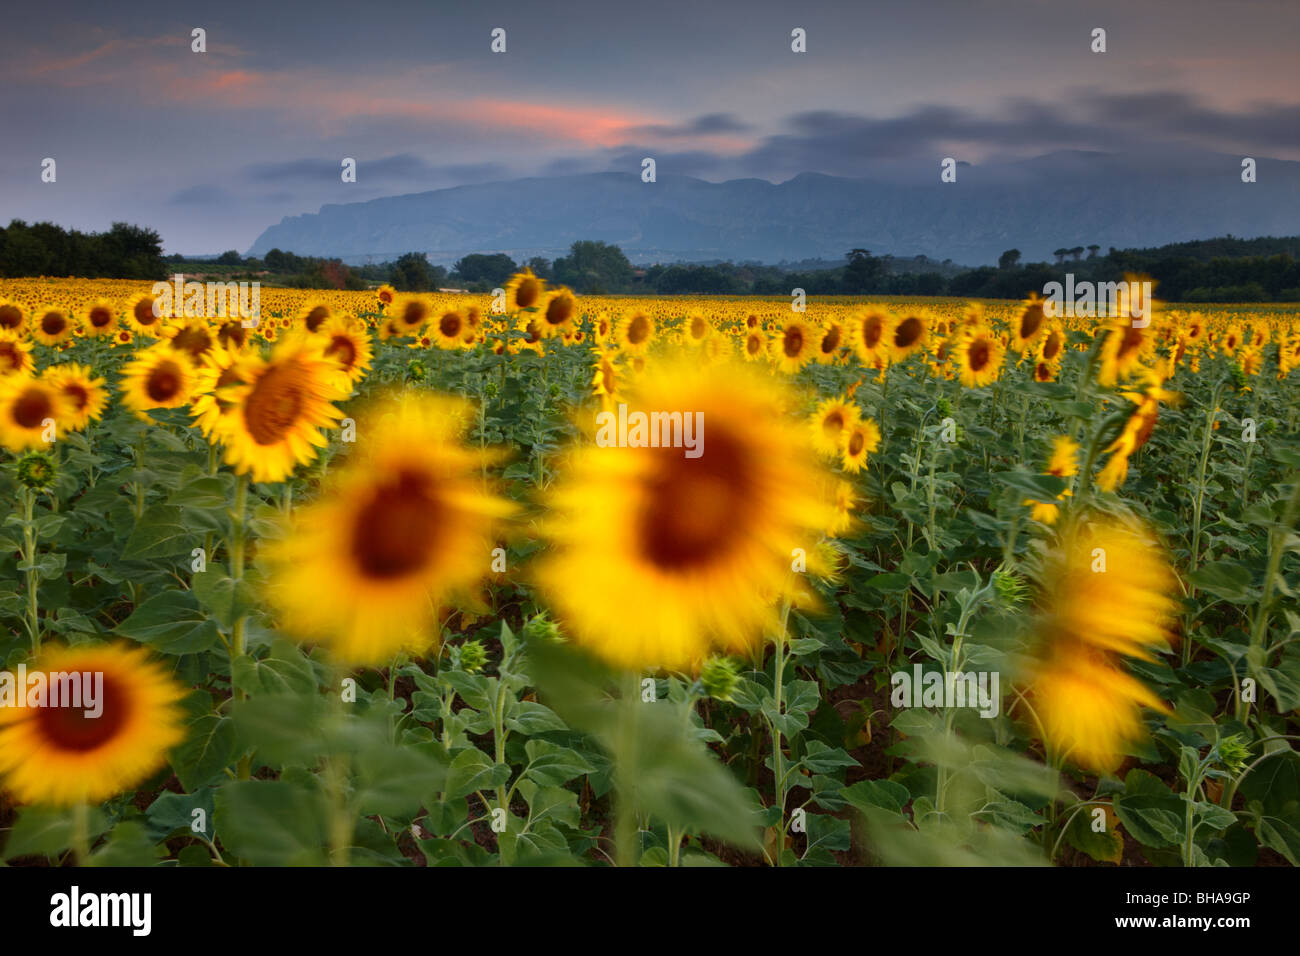 a field of sunflowers nr Puyloubier & Montagne Ste Victoire at dawn, Bouches-du-Rhone, Provence, France - Stock Image